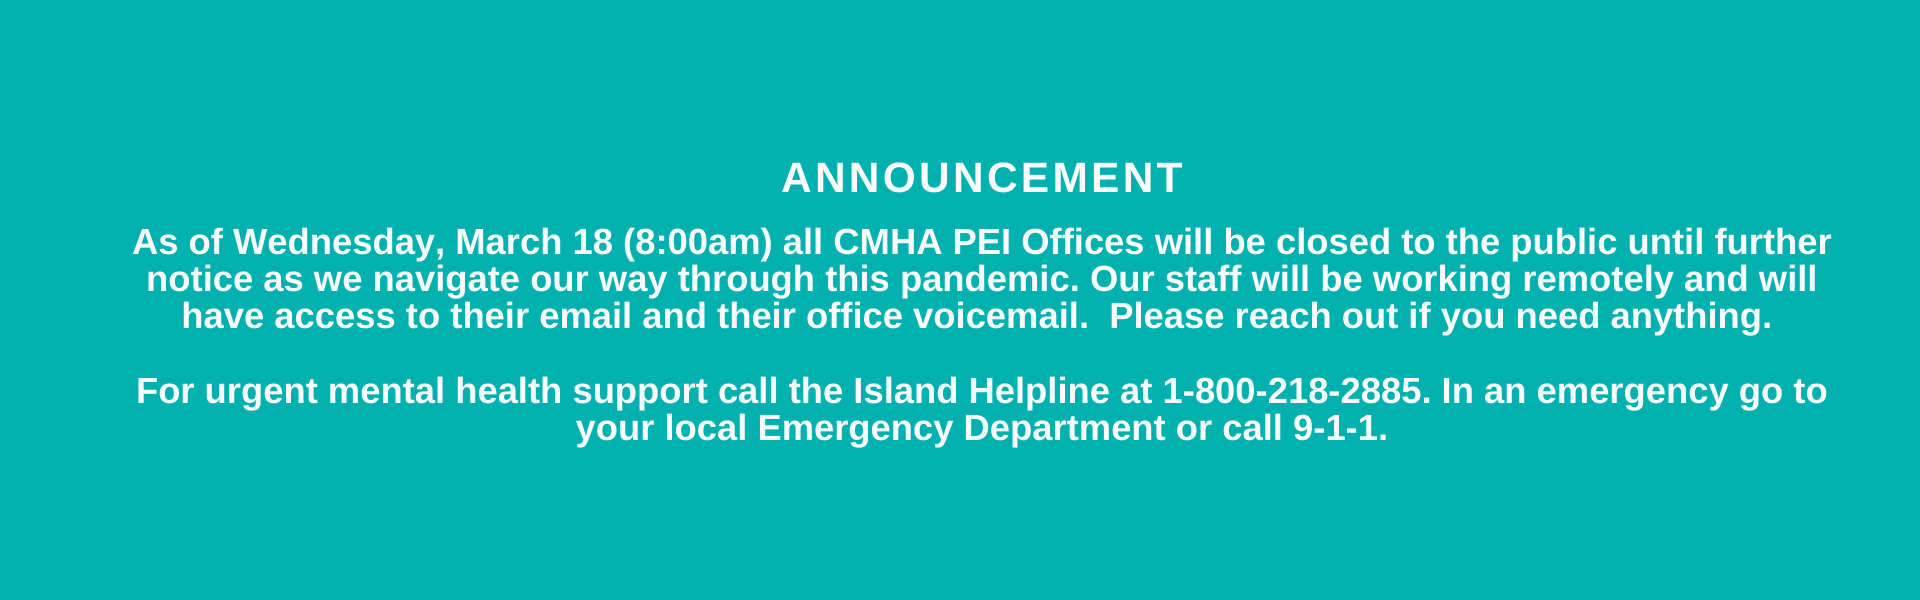 CMHA PEI has closed all its offices to the general public as of March 18 (8:00am)